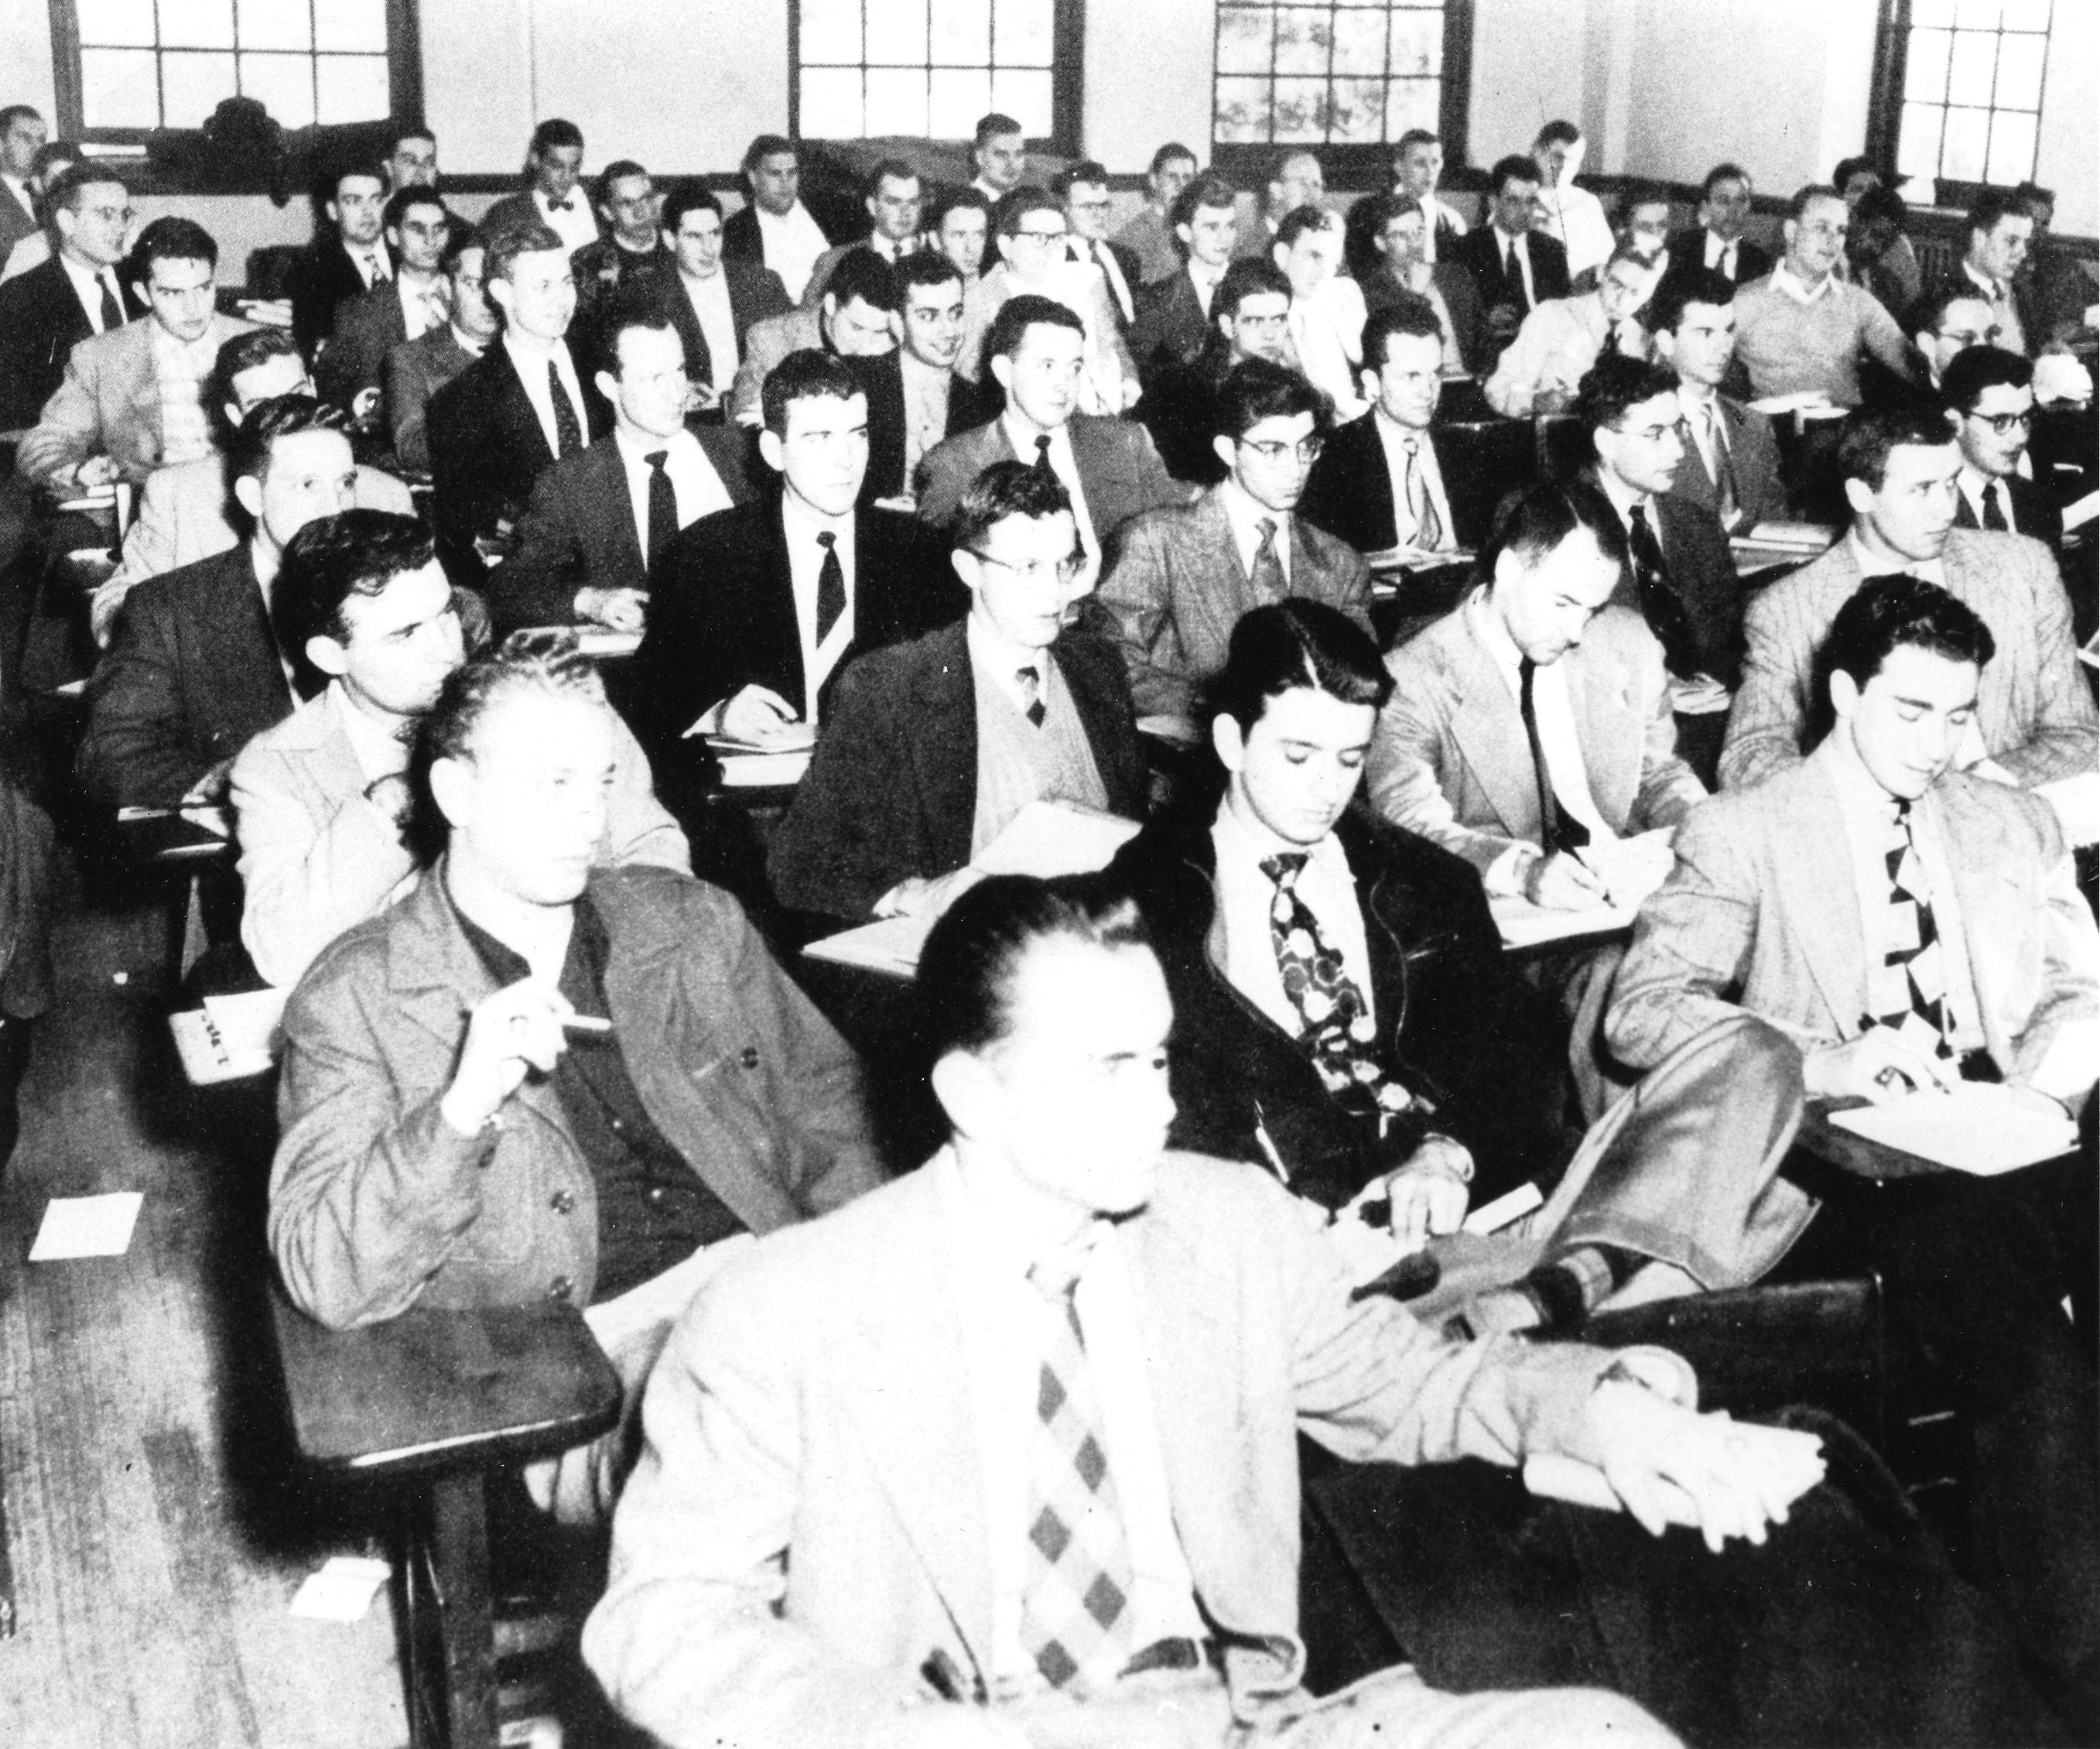 Some students without ties, 1950